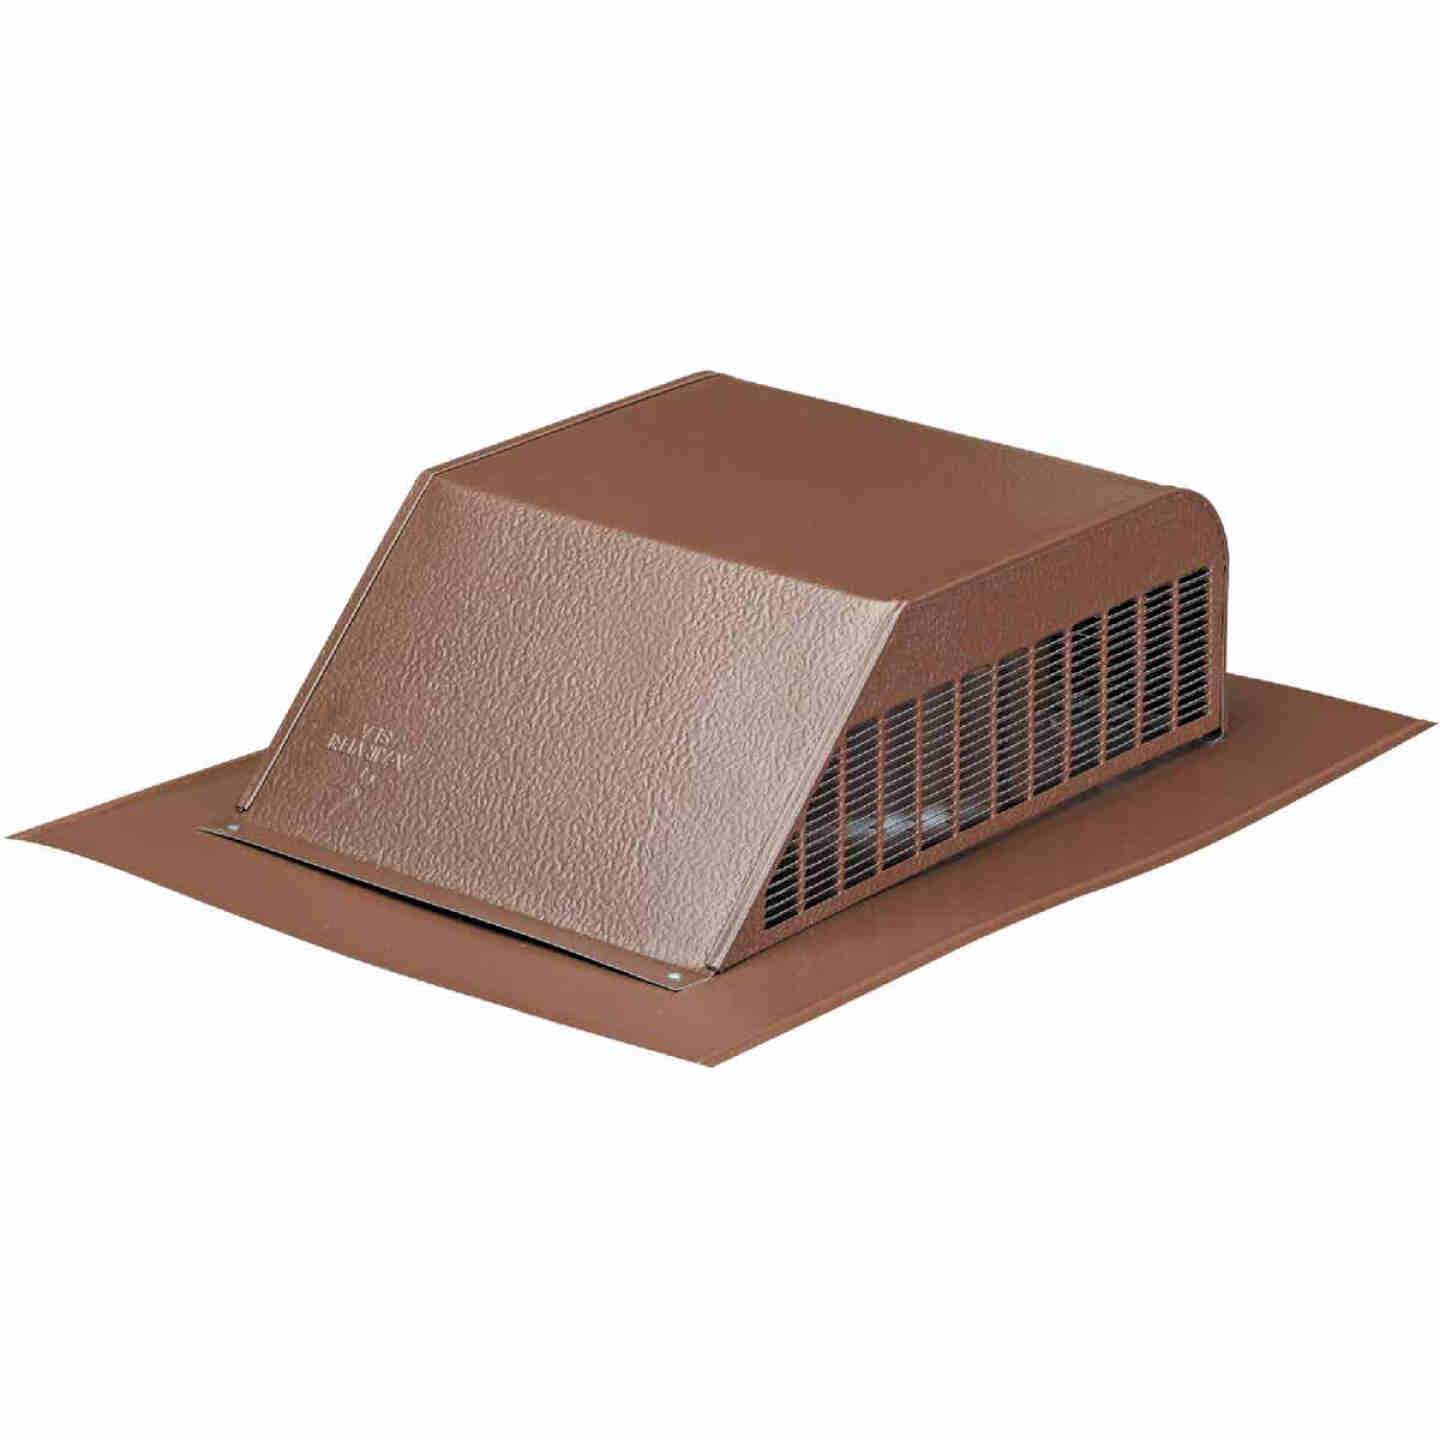 Airhawk 50 In. Brown Aluminum Slant Back Roof Vent Image 1